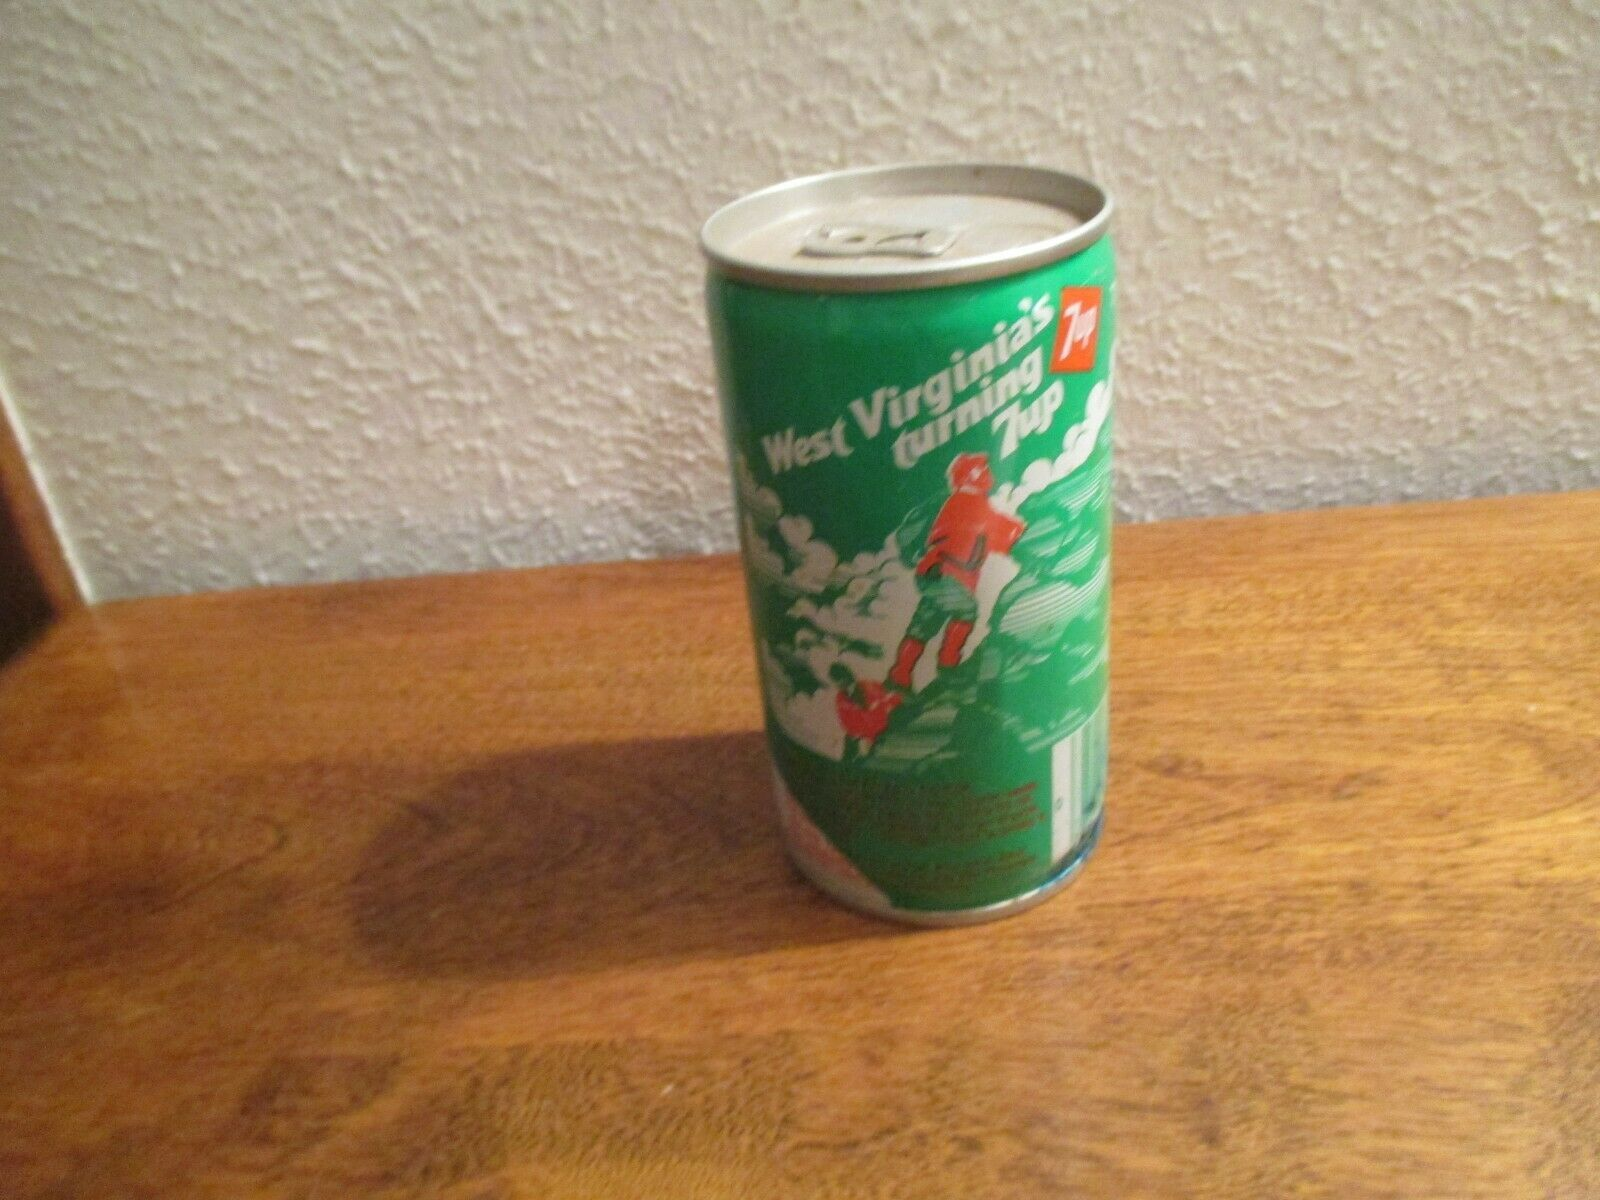 Primary image for West Virginia WV Turning 7up vintage pop soda metal can climbing seneca rocks